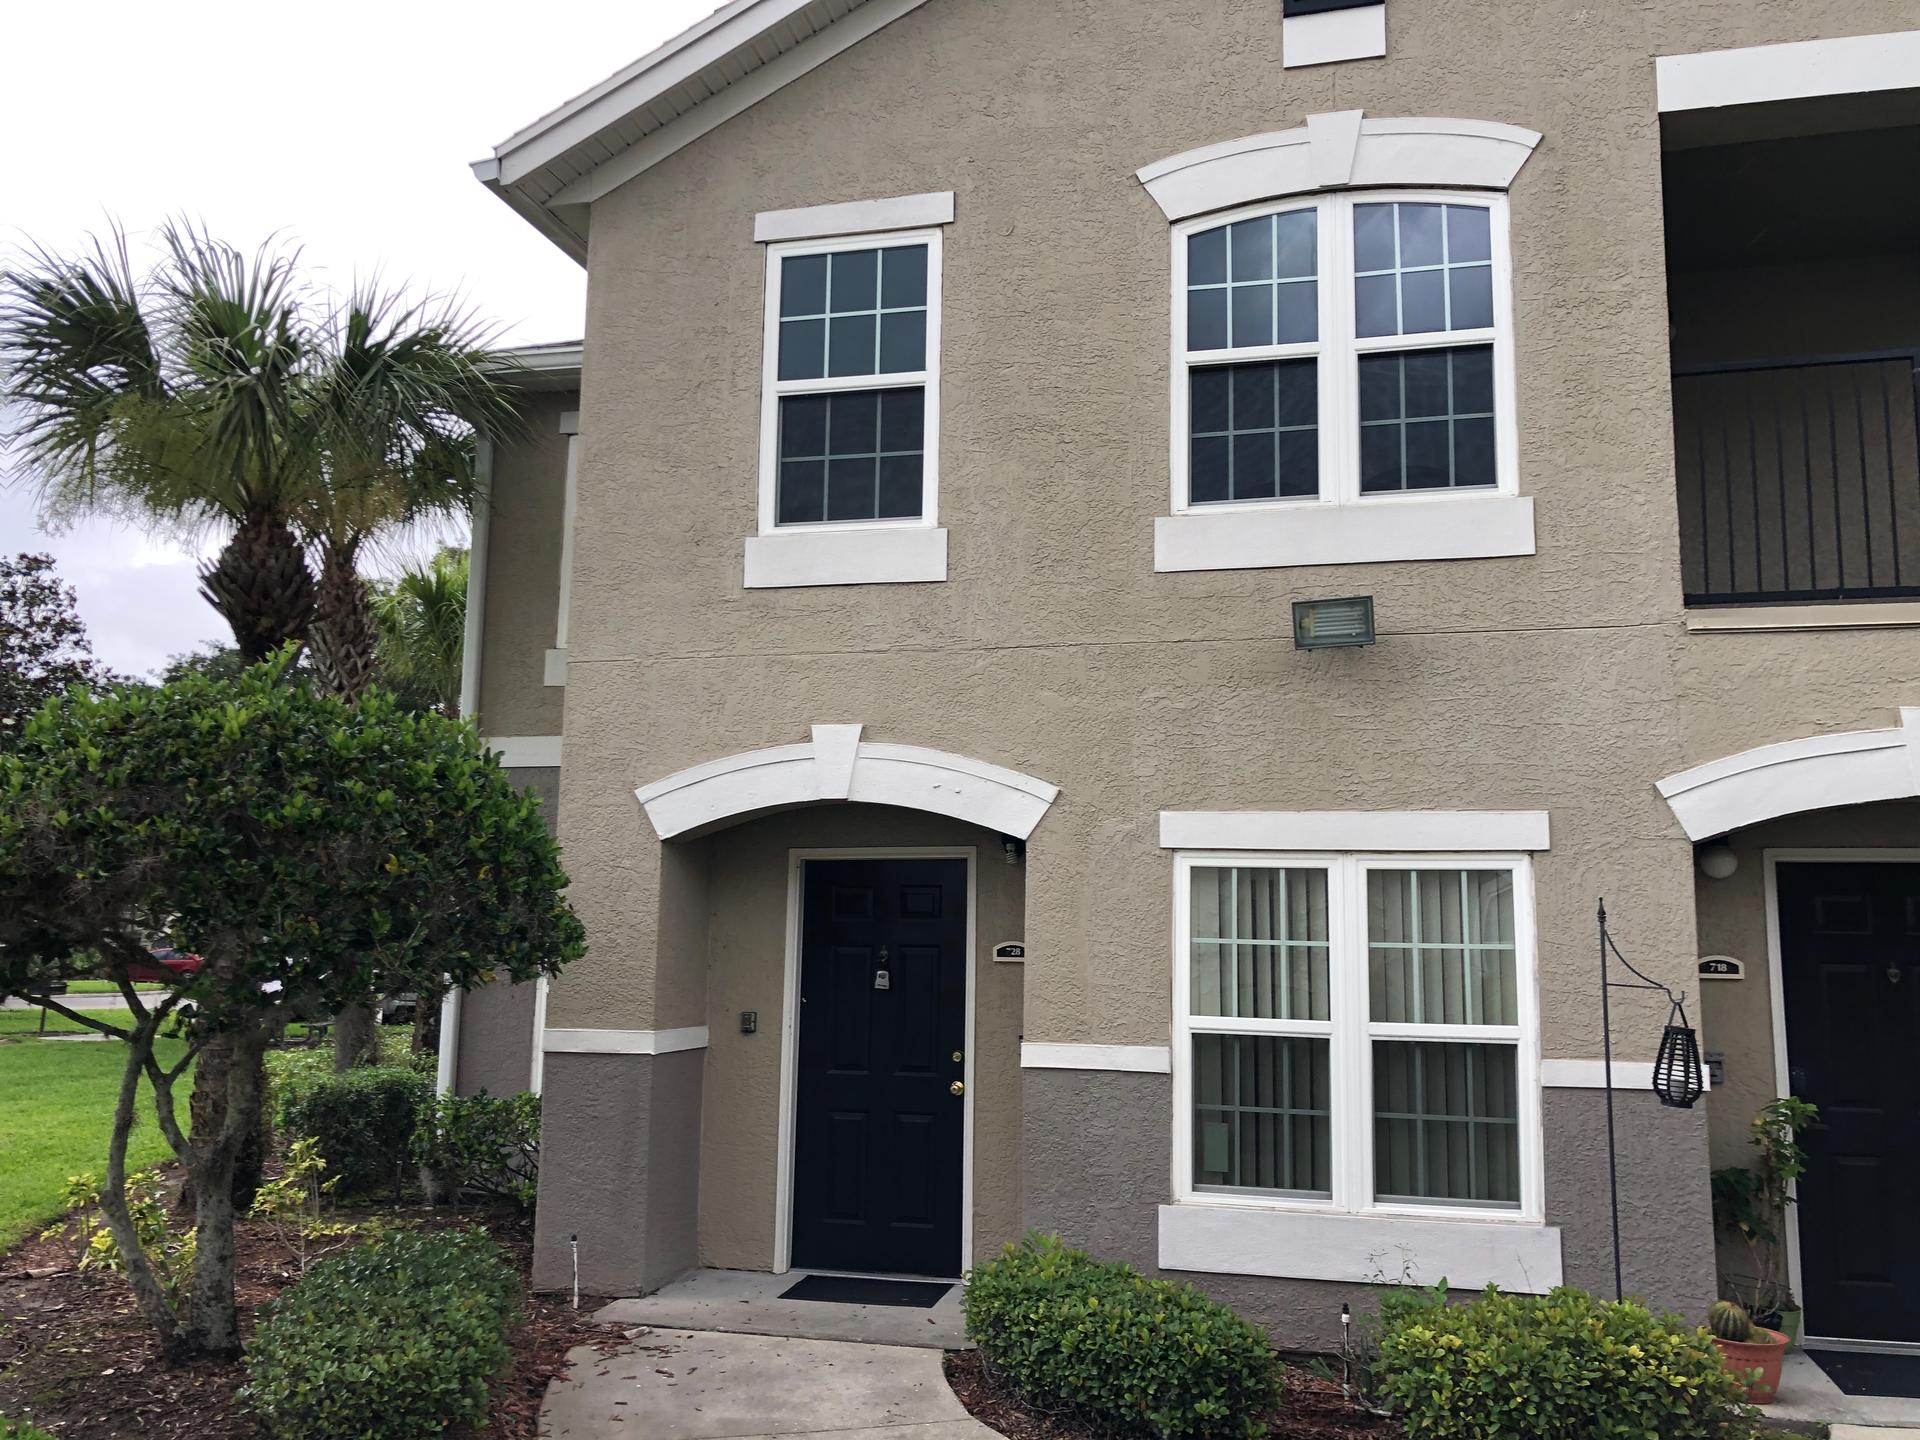 Photo of property: 6584 Swissco Dr. #728, Orlando, FL 32822